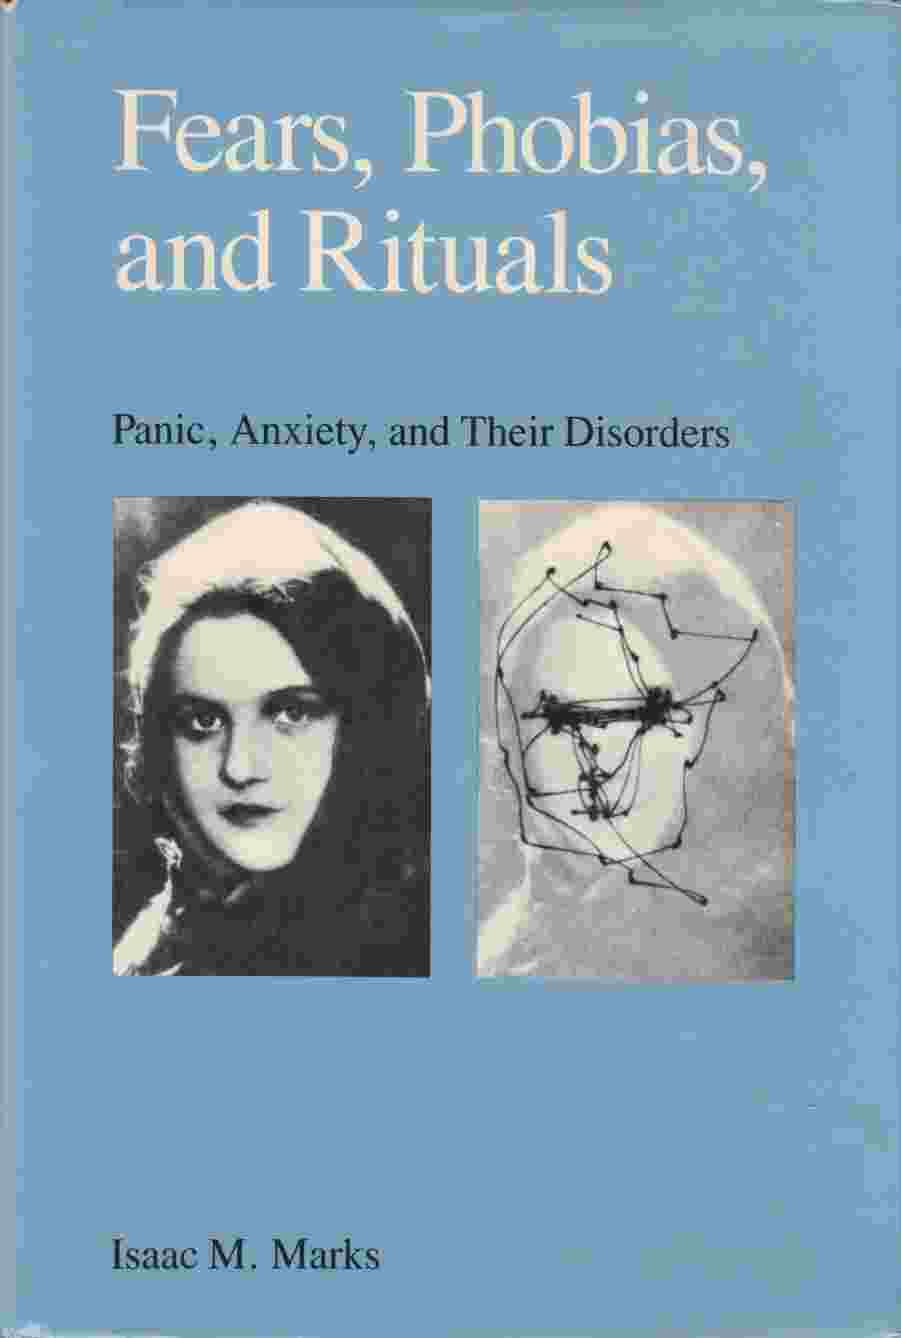 Image for Fears, Phobias, and Rituals Panic, Anxiety, and Their Disorders